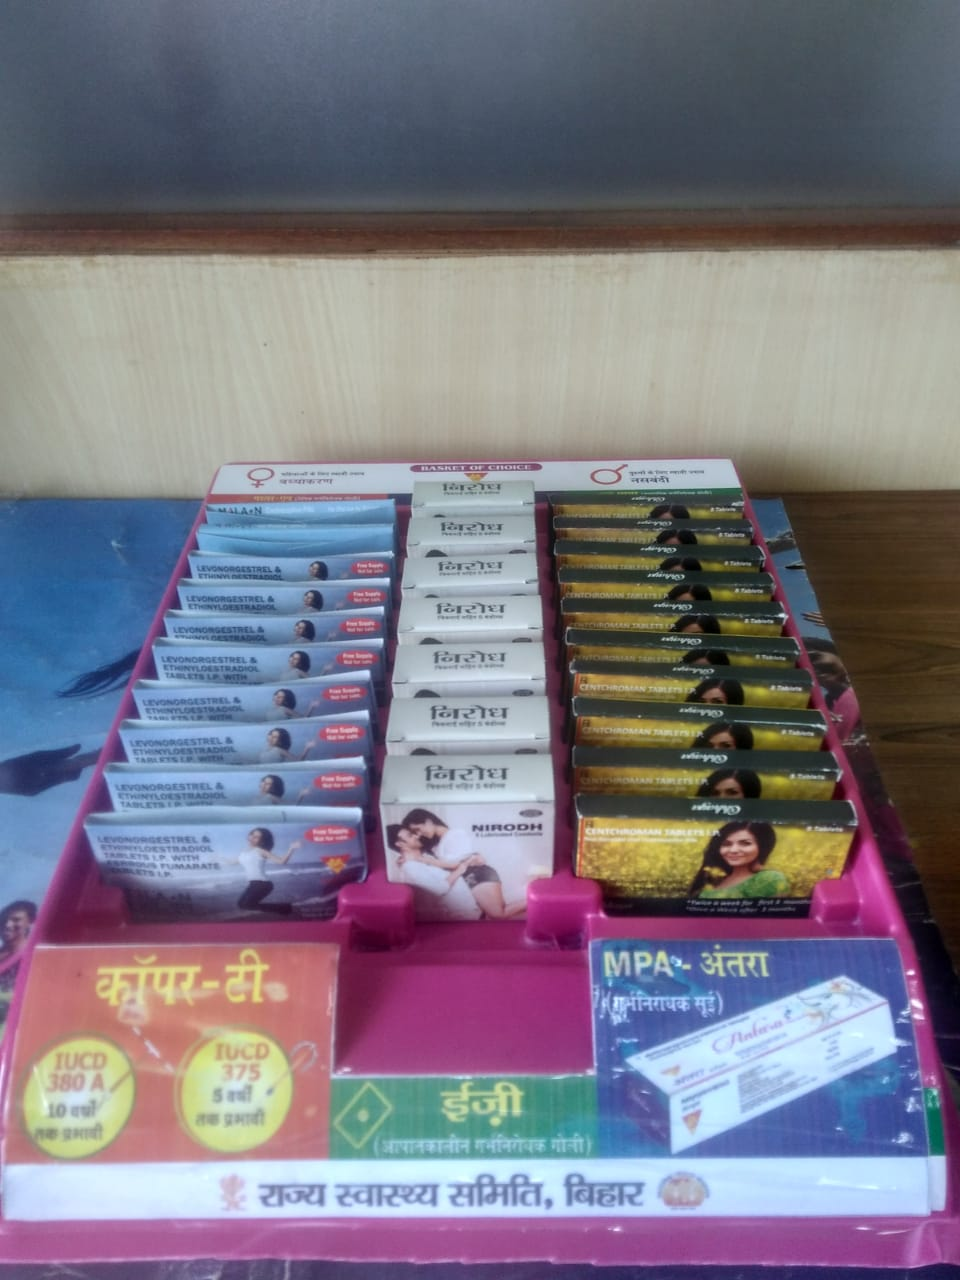 Take a look at this contraceptive tray from Bihar displaying the basket of  family planning choices